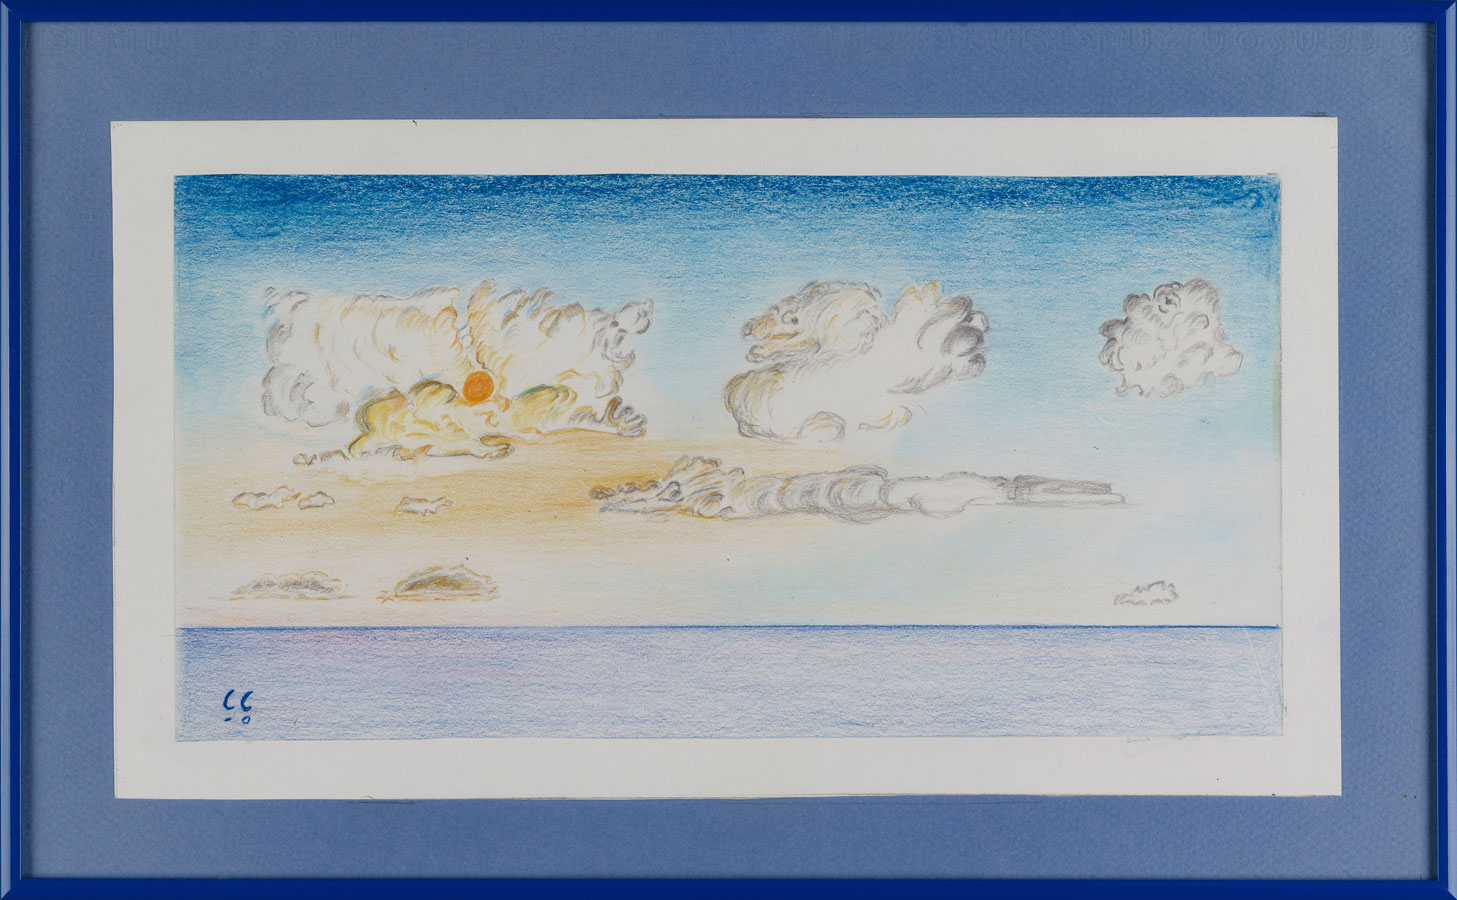 COUCHANT À PIANA 4 | 1990, crayons de couleurs, 36 x 28,5 cm | Photo Erwan Masson